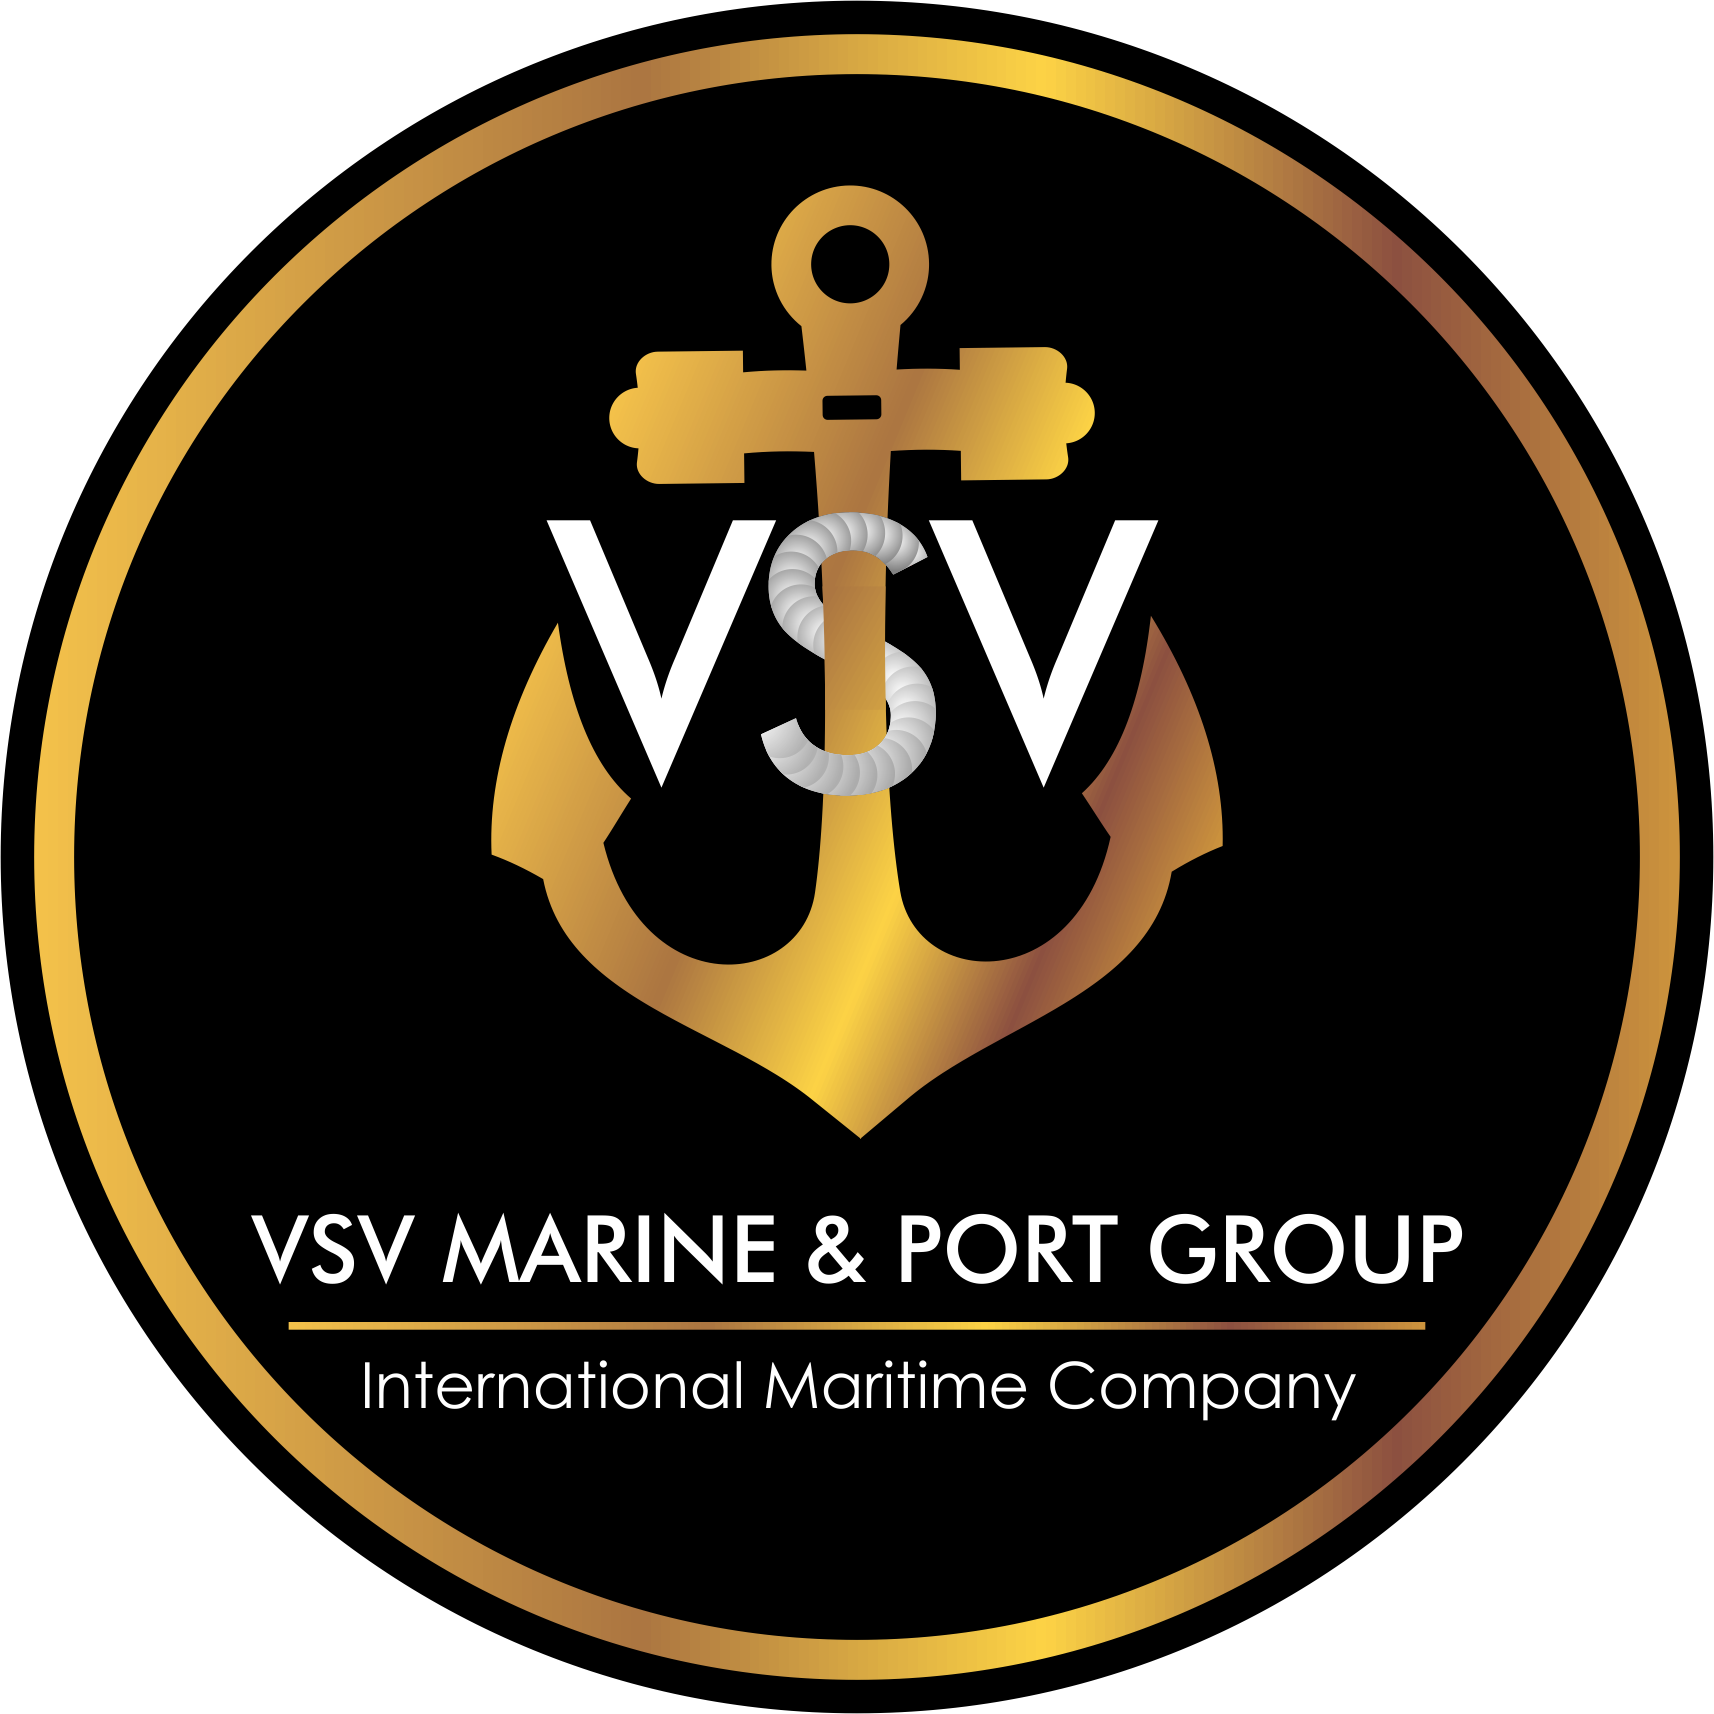 VSV Marine Group